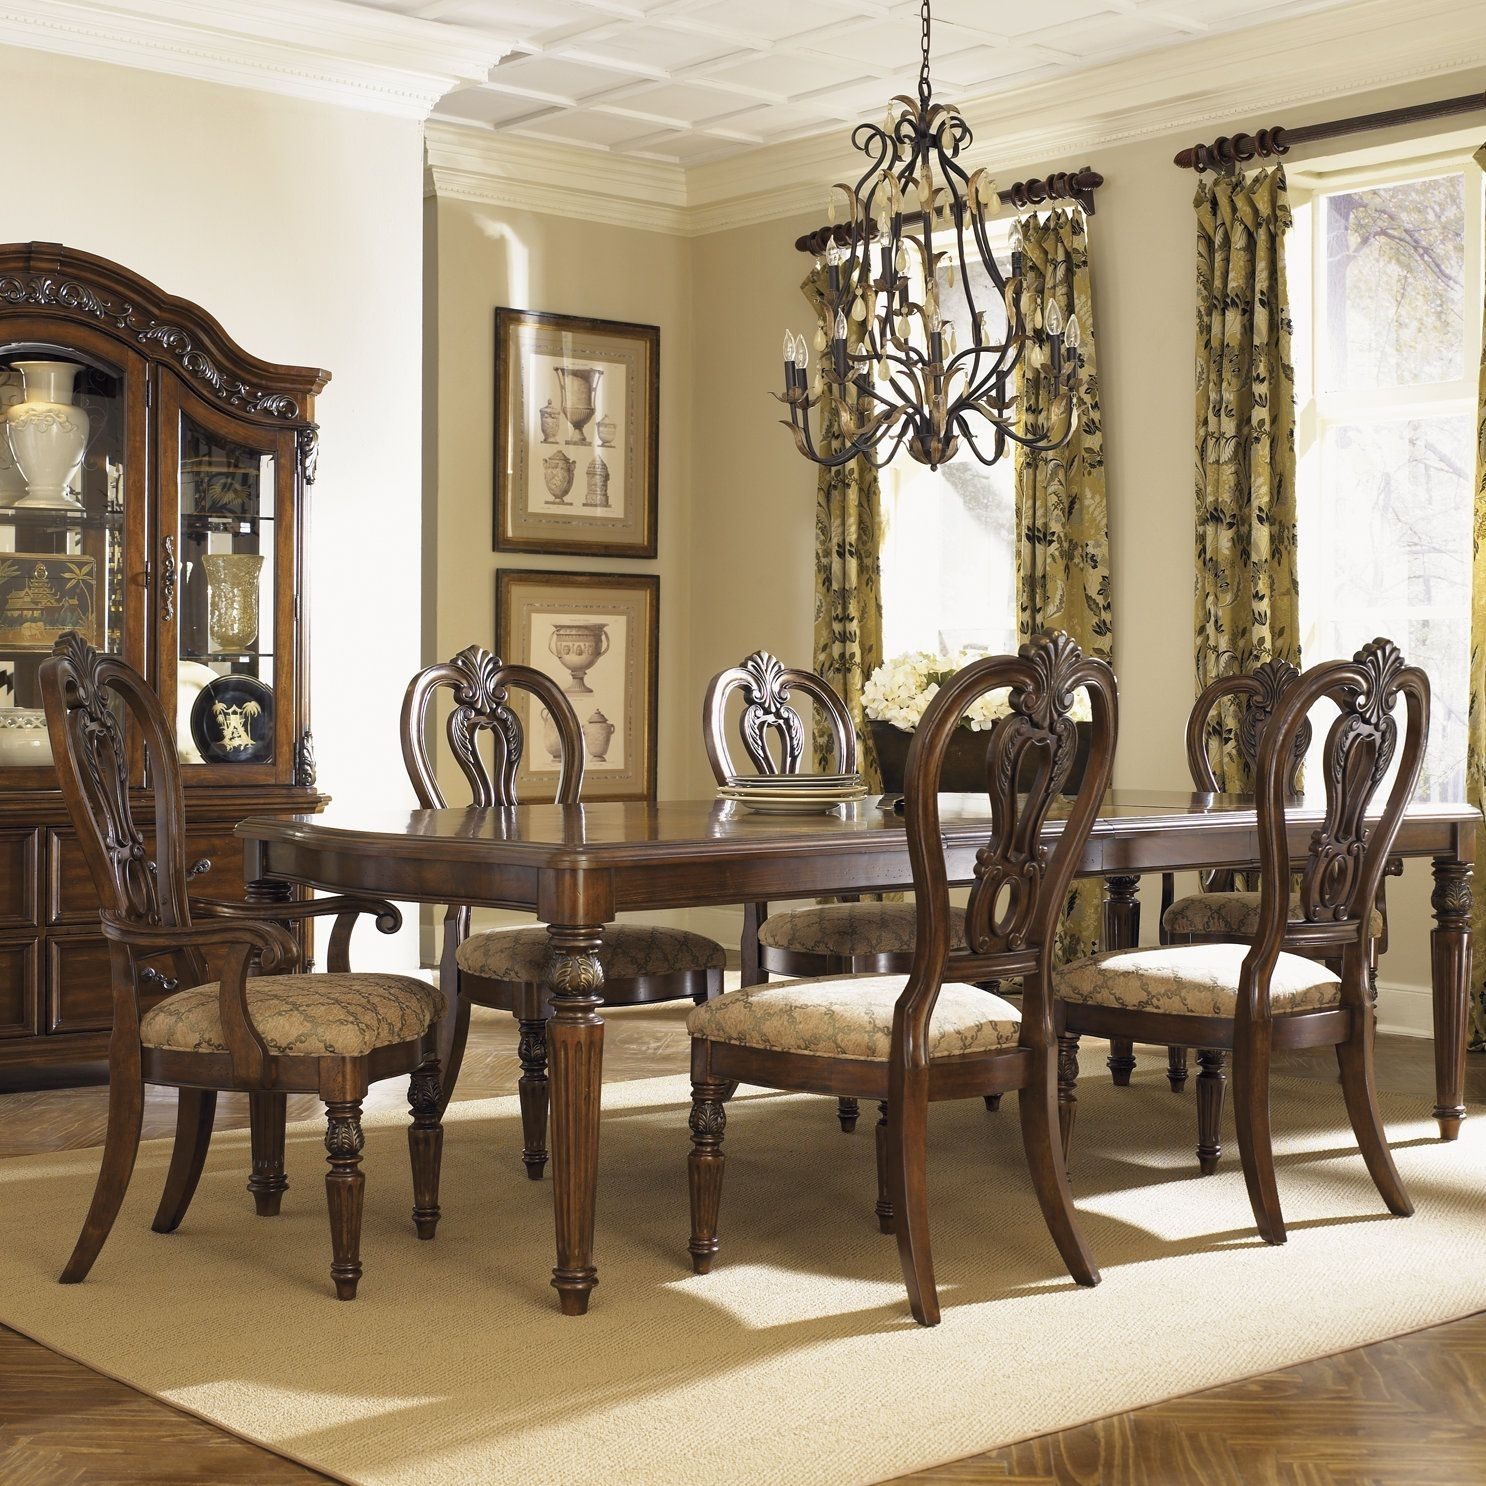 Regency Dining Table | Products | Pinterest | Products Throughout Most Recently Released Norwood 7 Piece Rectangle Extension Dining Sets (View 13 of 20)